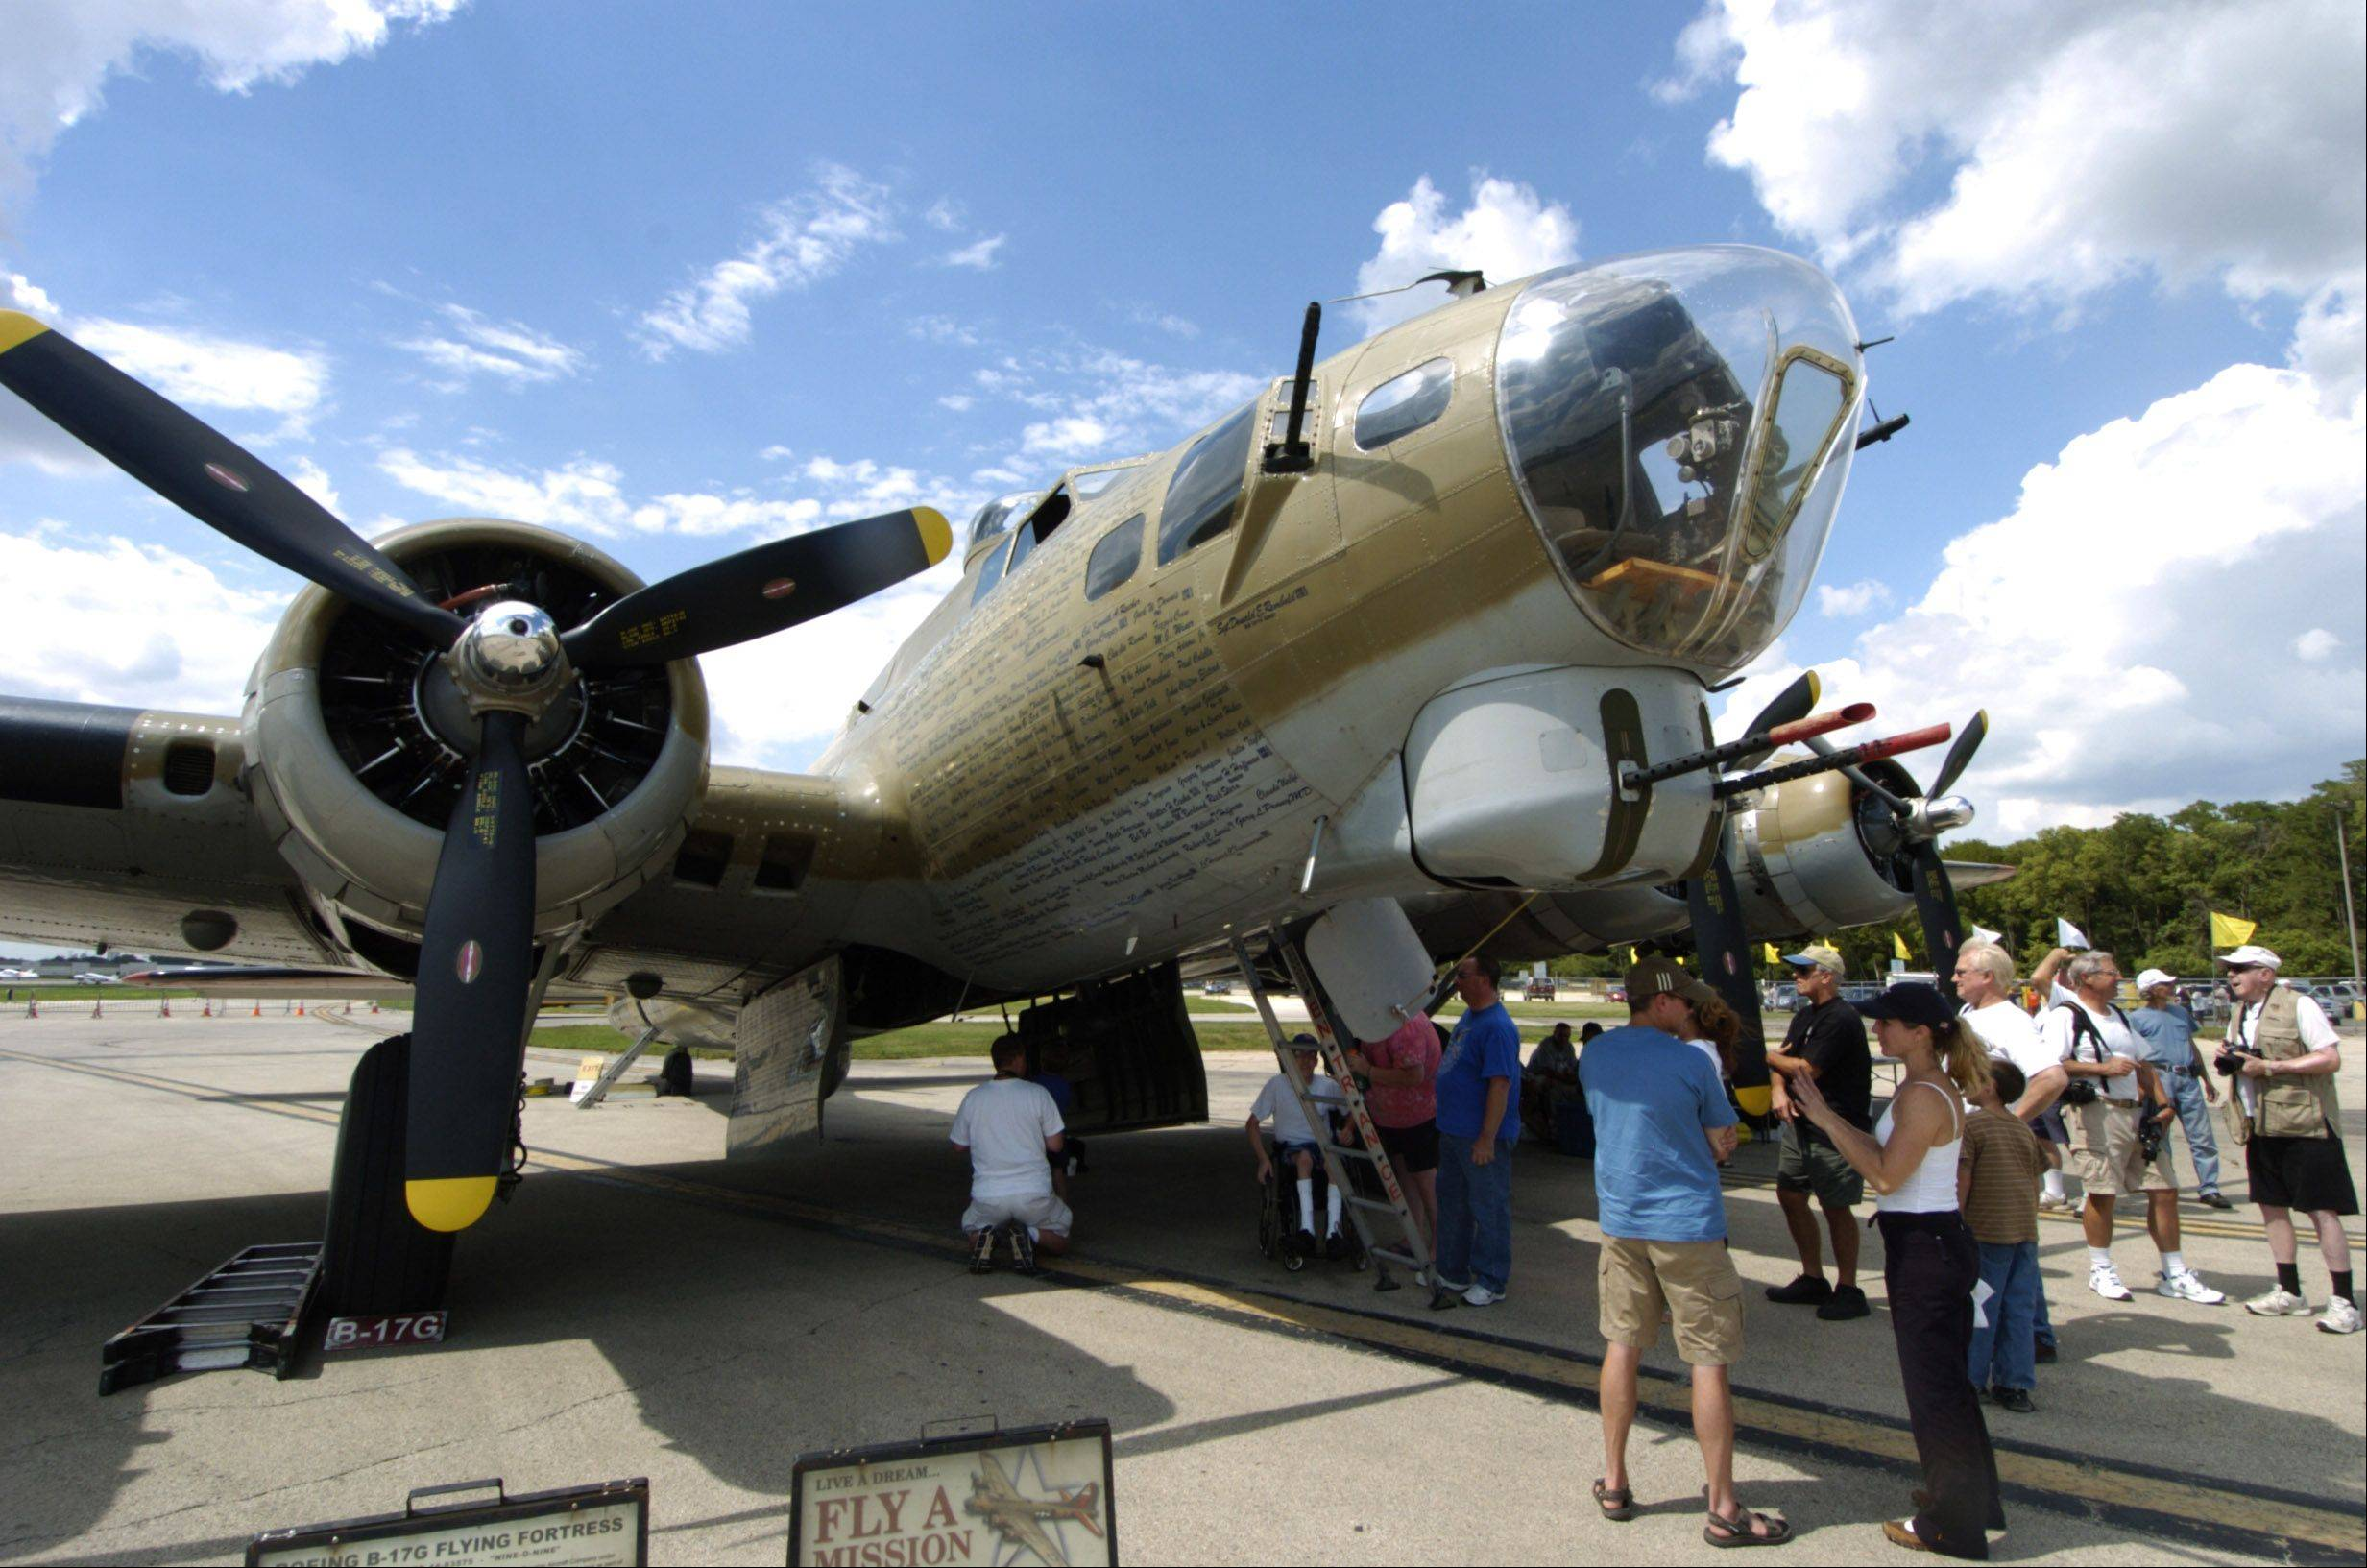 A B-17 is among the World War II planes on display during a Wings of Freedom stop at Chicago Executive Airport Friday.